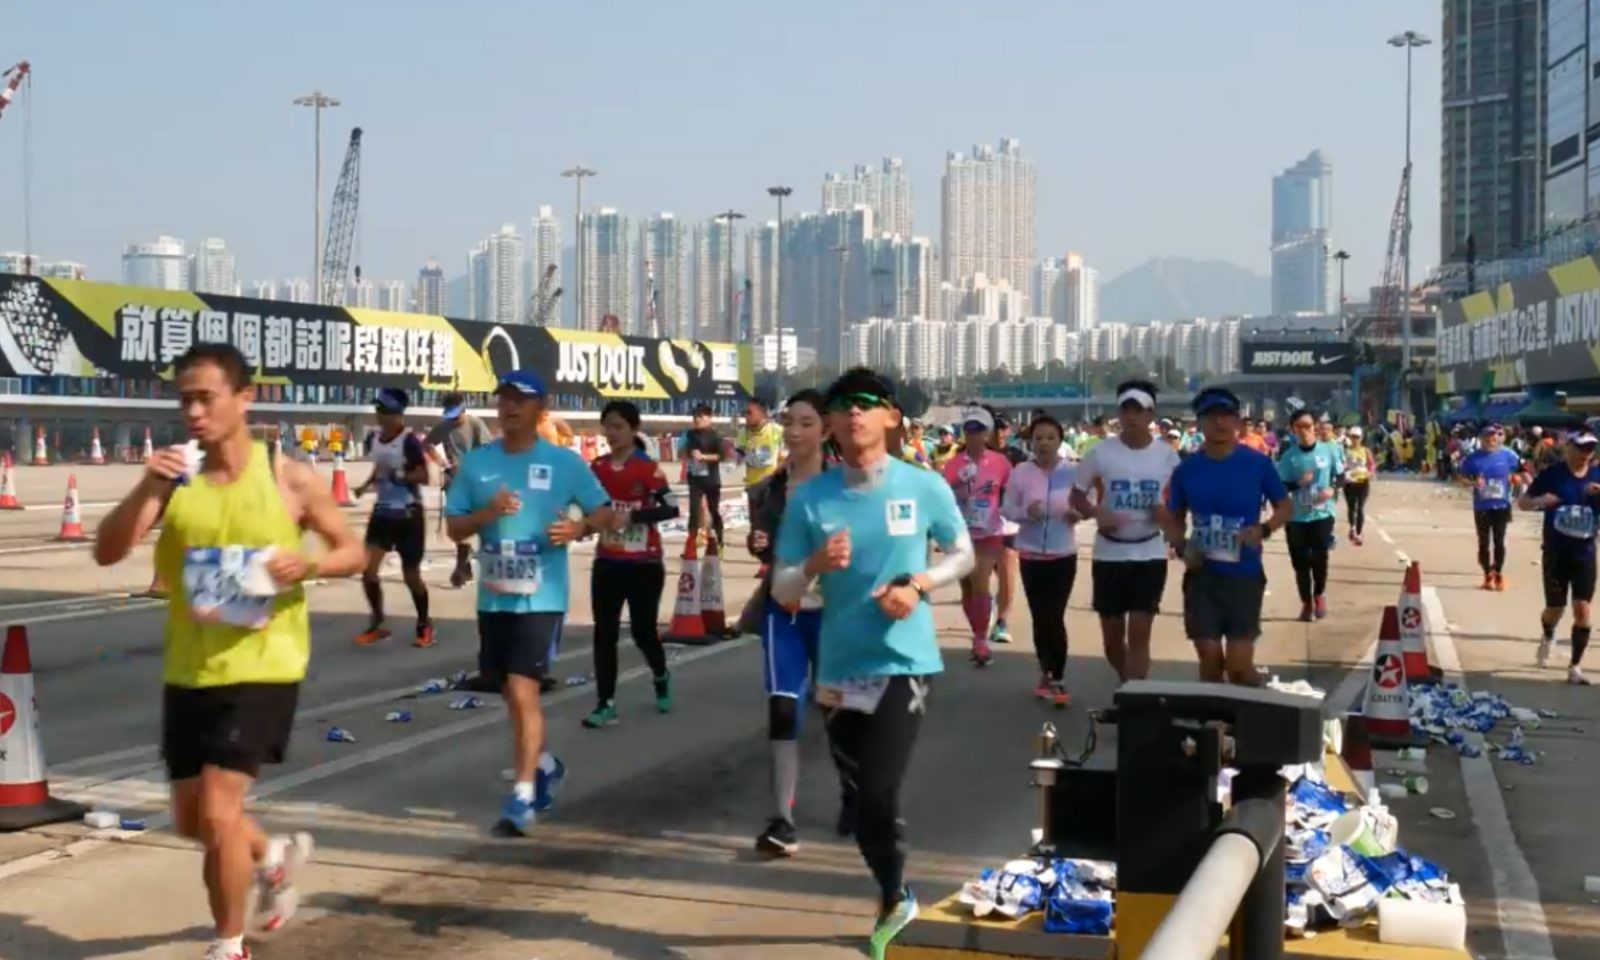 More first aid at the Hong Kong Marathon